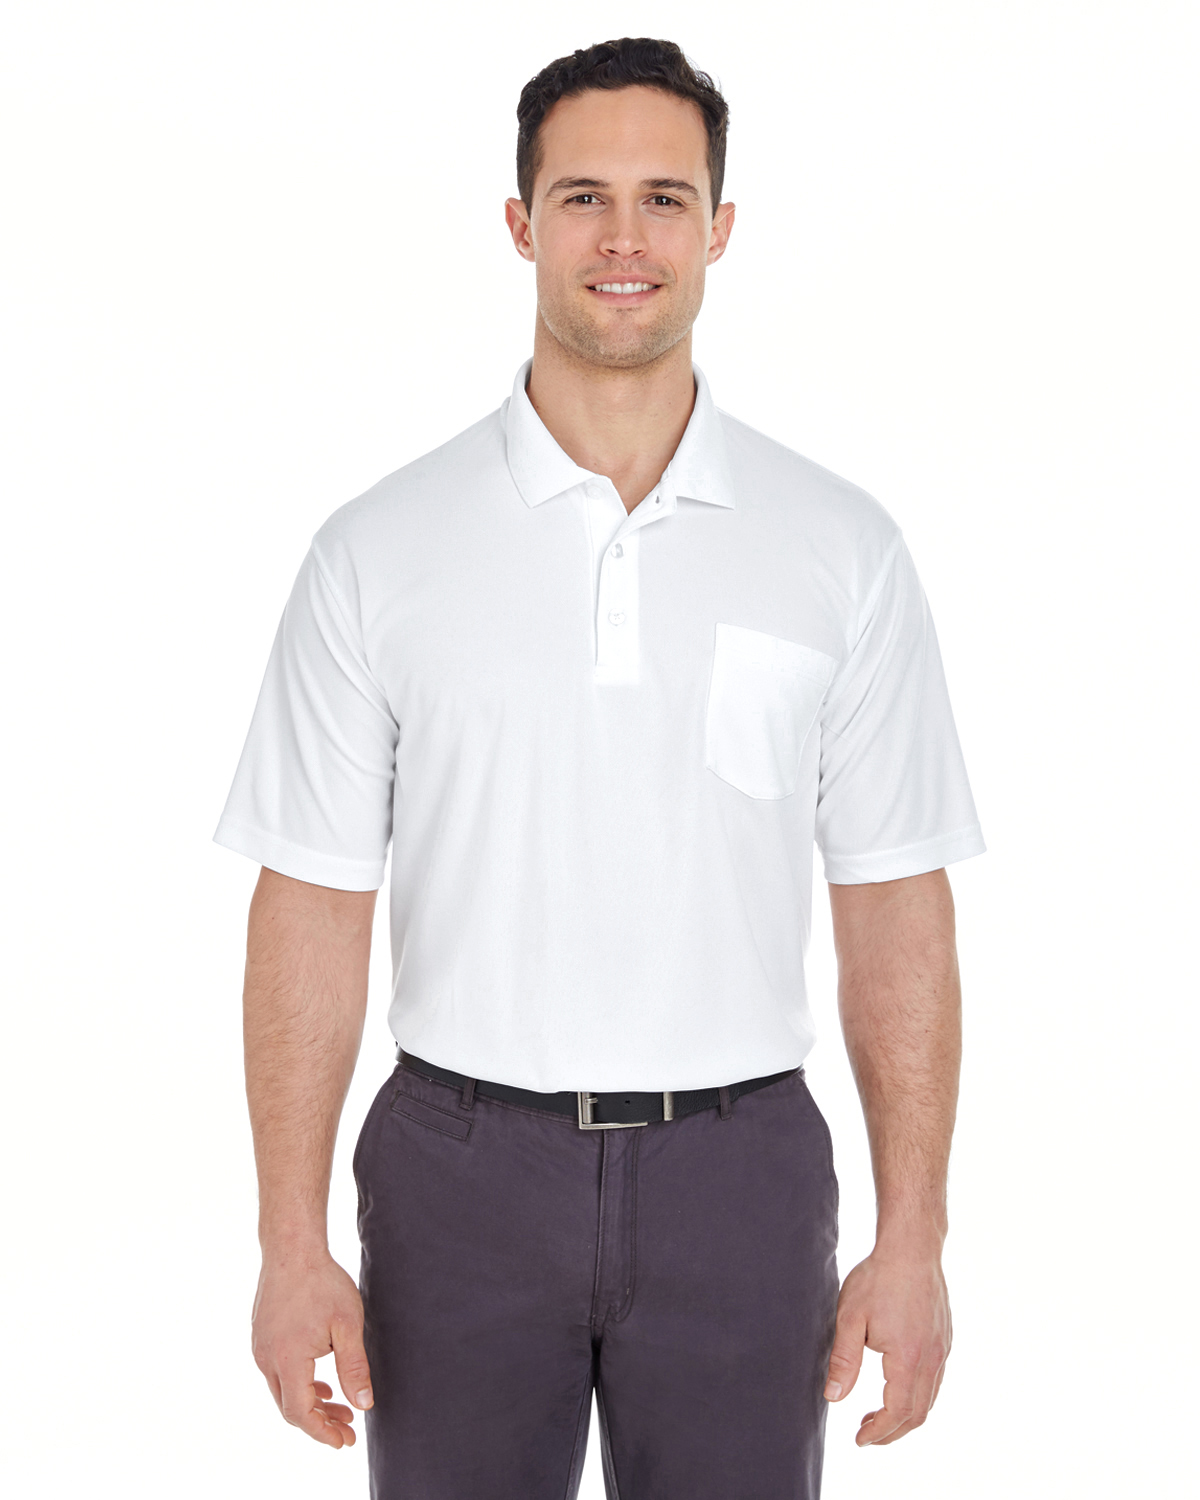 Ultra Club 8210P - Adult Cool & Dry Mesh Pique Polo ...